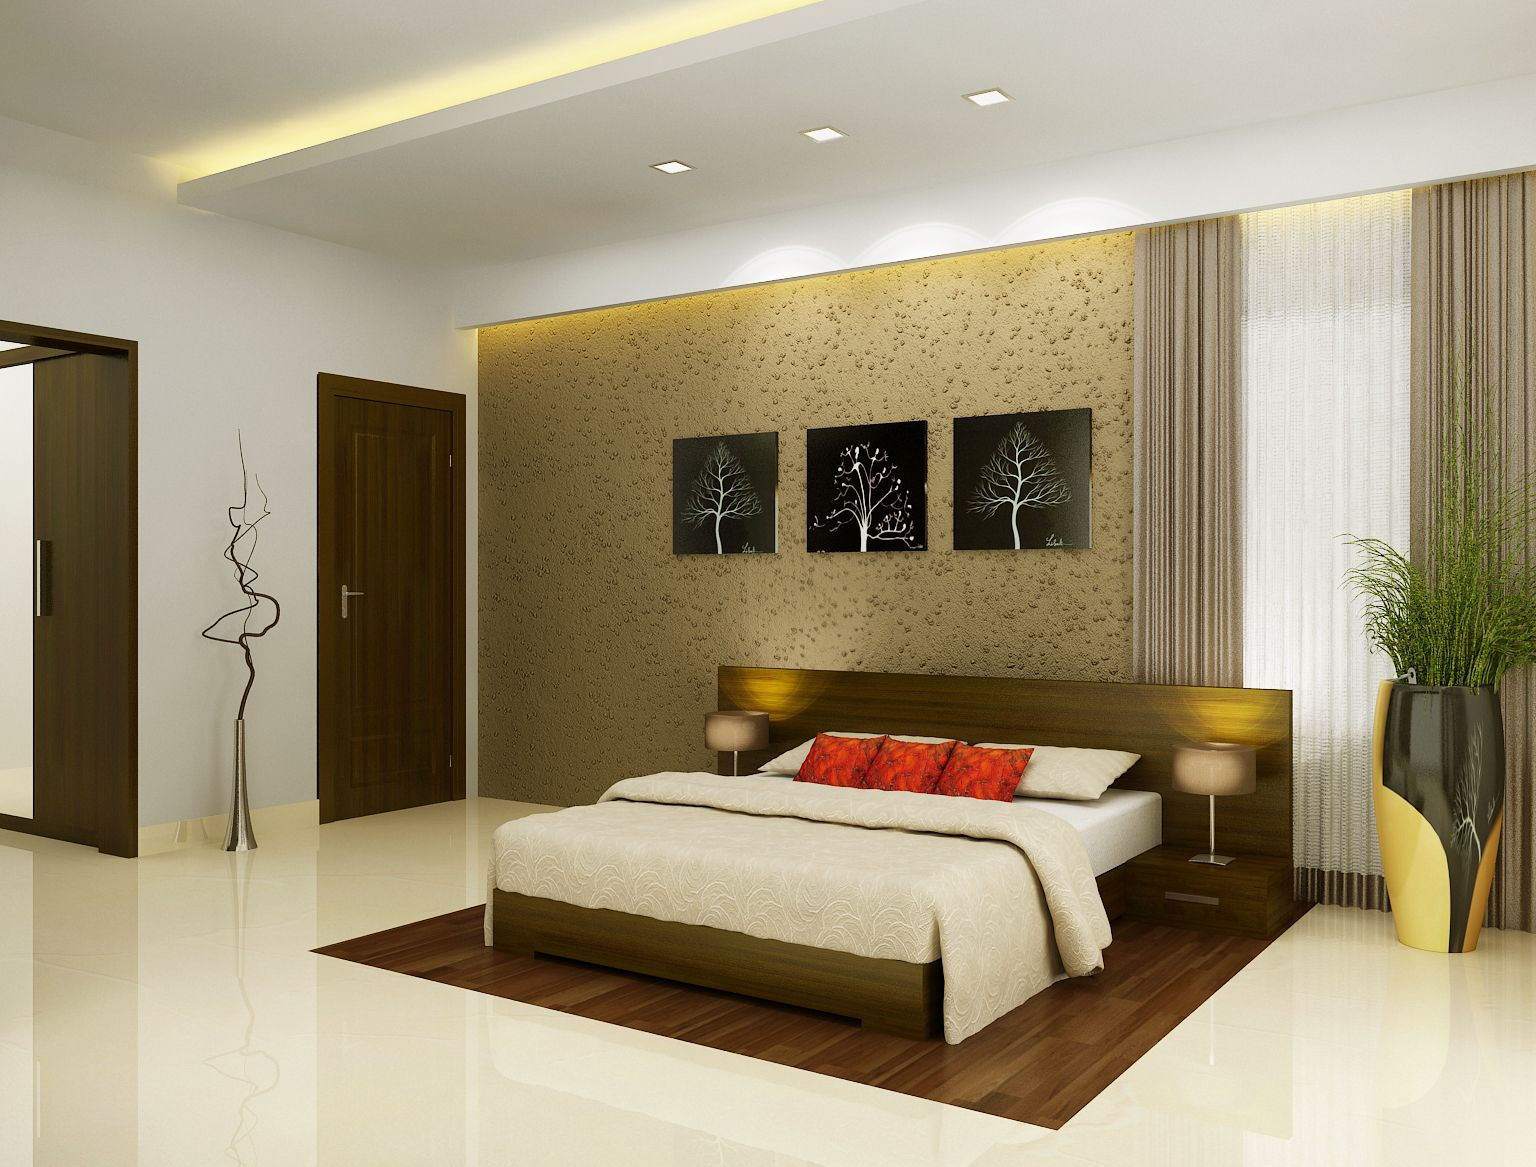 504d5dbbcae25be64ca3061c071bd176 - 18+ Small House Interior Design In Kerala Pictures